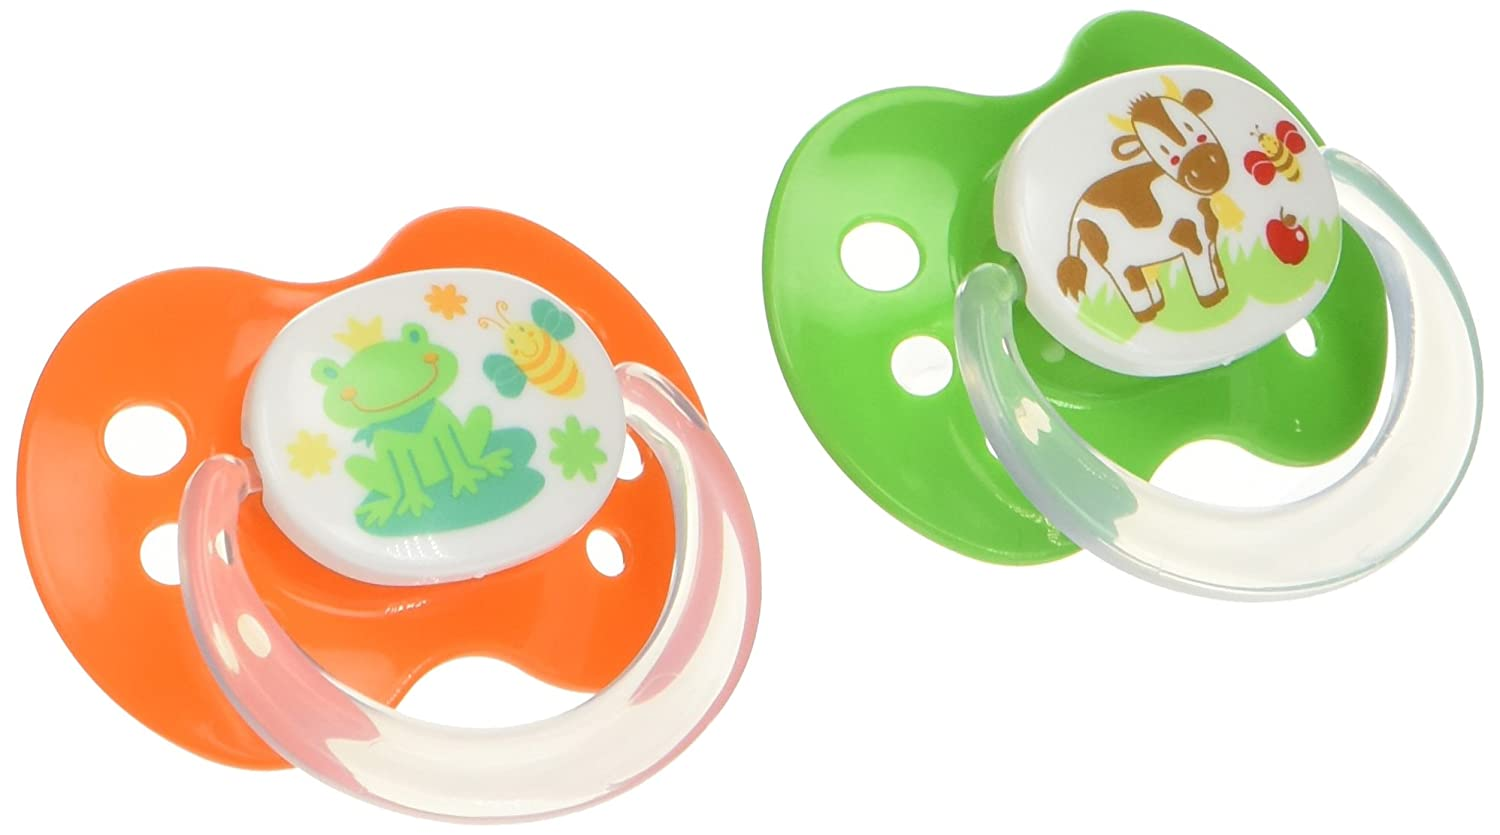 Playtex Baby Binky Orthodontic Silicon BPA-Free Pacifiers, 6+ Months, Superfriends, Pack of 2 Pacifiers Edgewell Personal Care 10078300020643